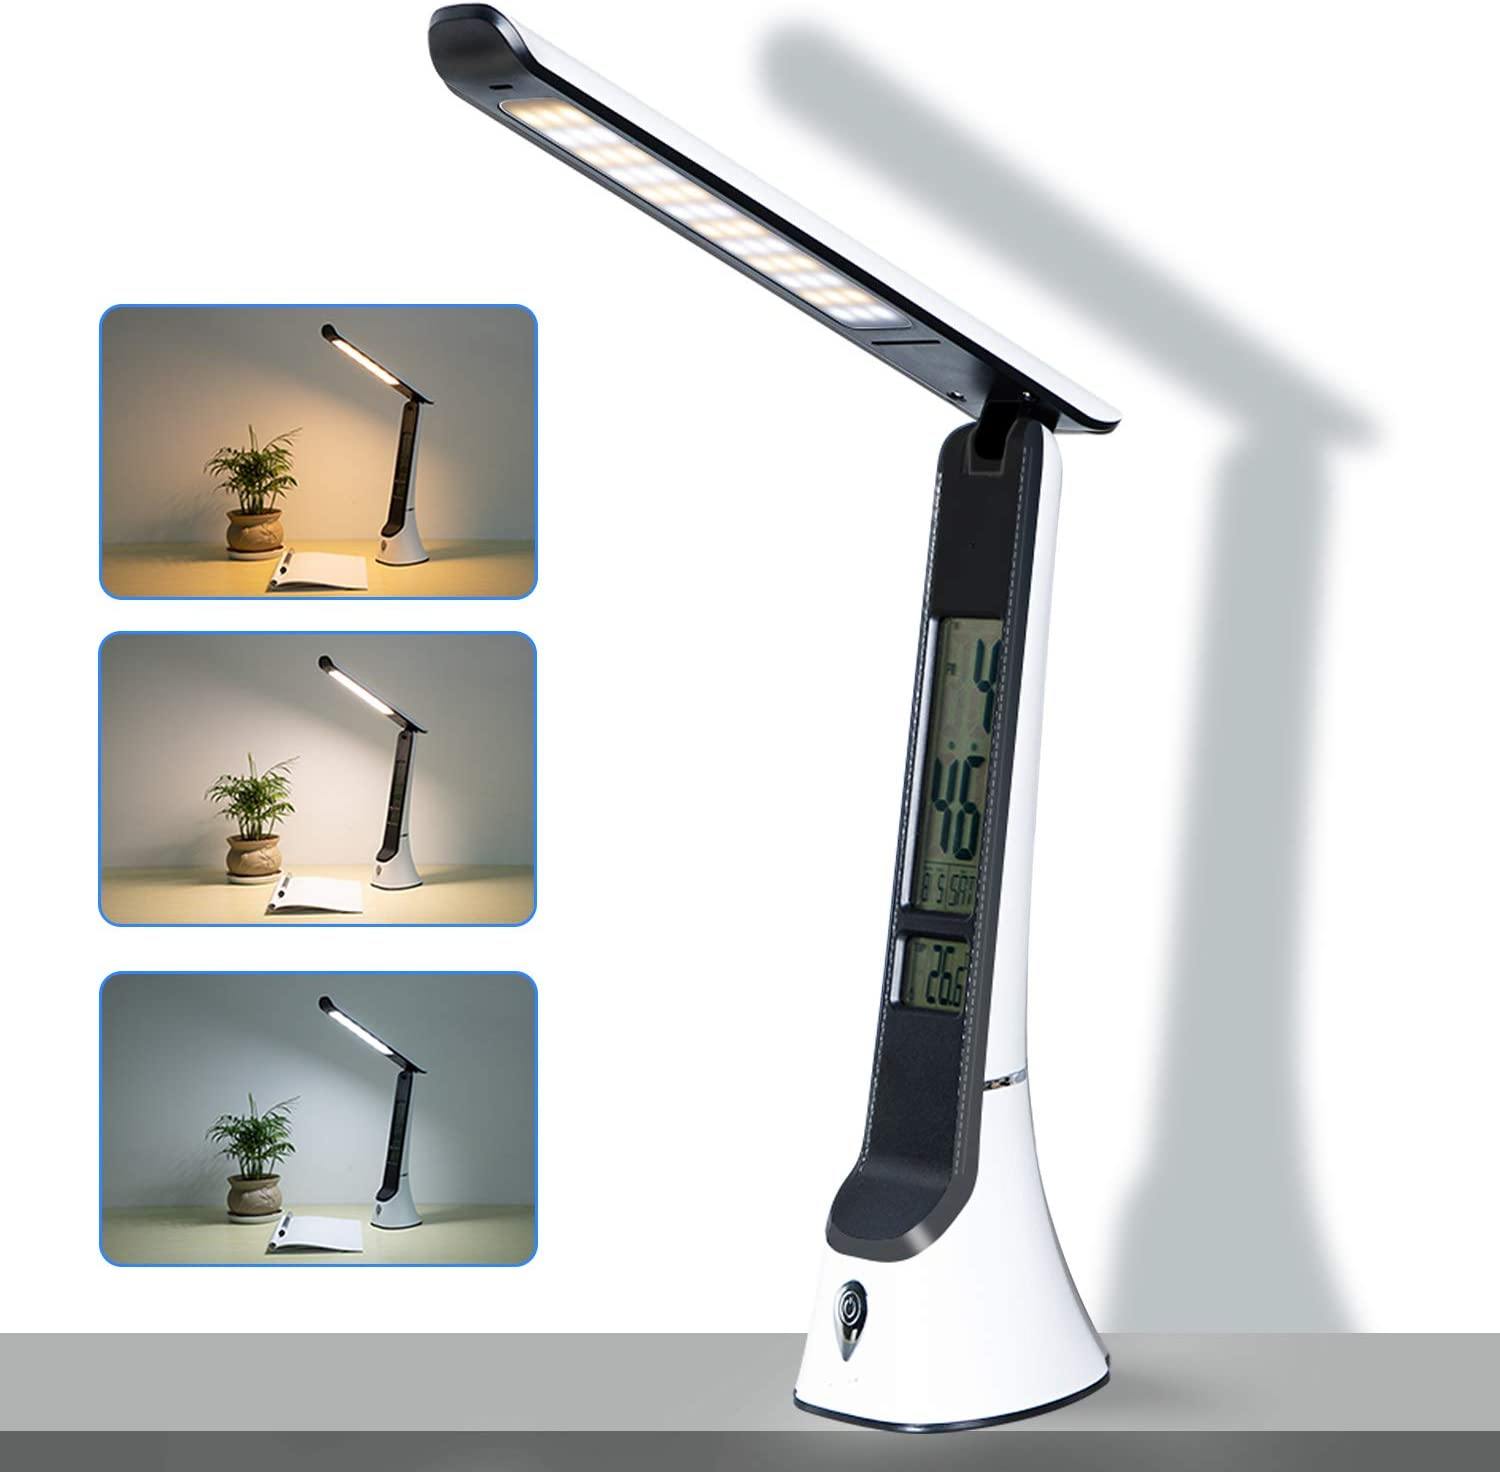 LED Desk Lamp LCD Screen Ouesen,Lamp Clock with 3 Color Modes&Stepless Dimming,Touch Control Small Desk Lamp Have Calendar,Built-in Clock,Thermometer,USB Charging Port Study Lamp for Home and Office